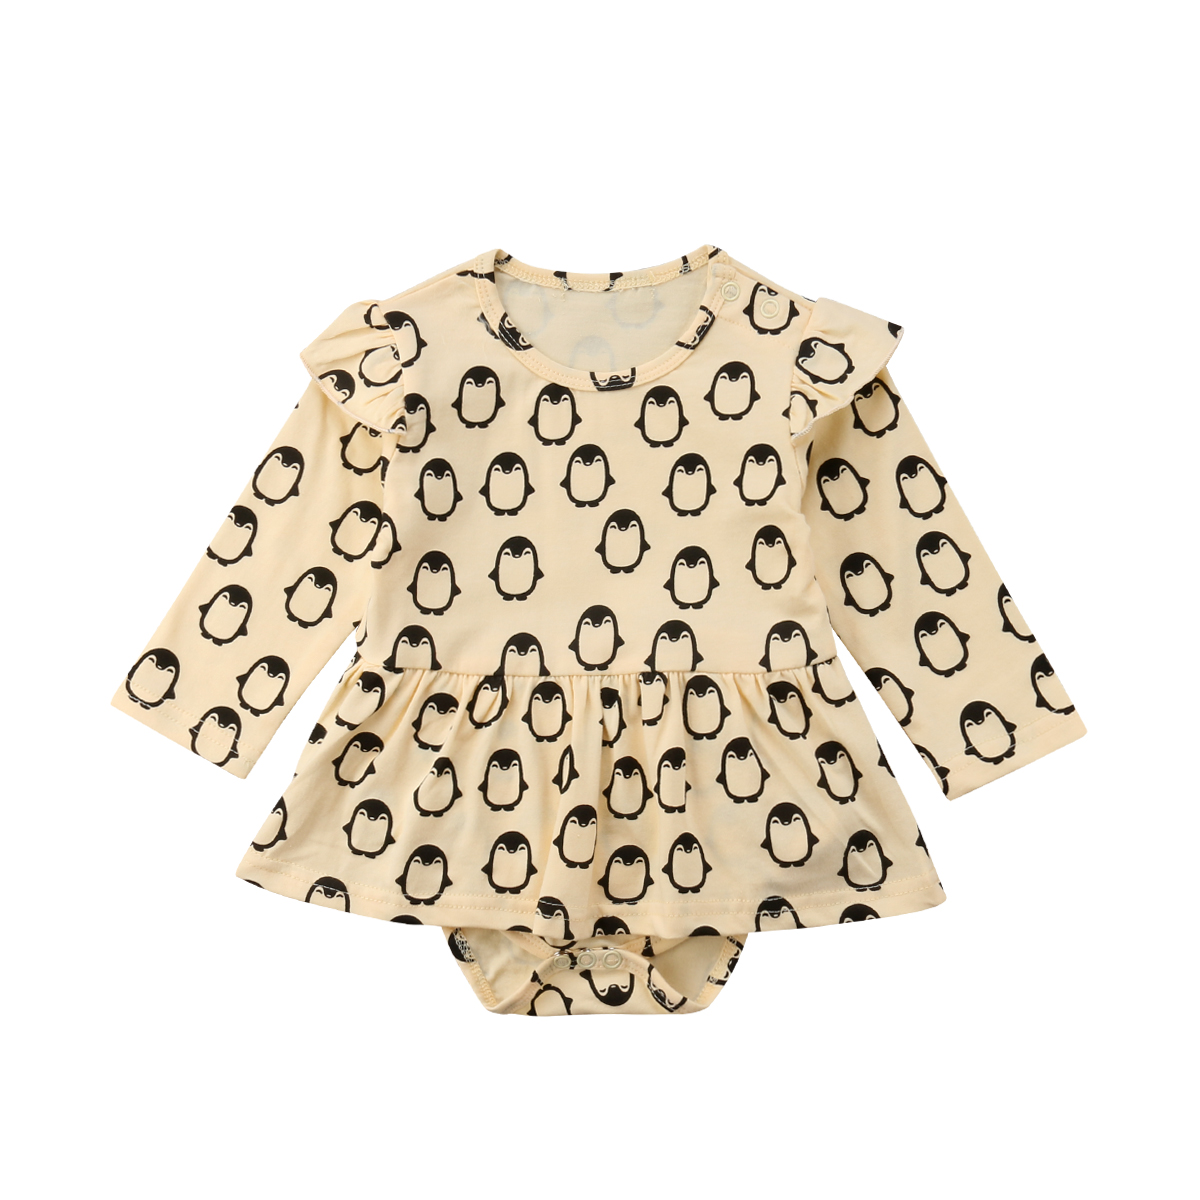 2018 Infant Newborn Baby Girl Cotton Long Sleeve  Romper Jumpsuit Clothes Hot New